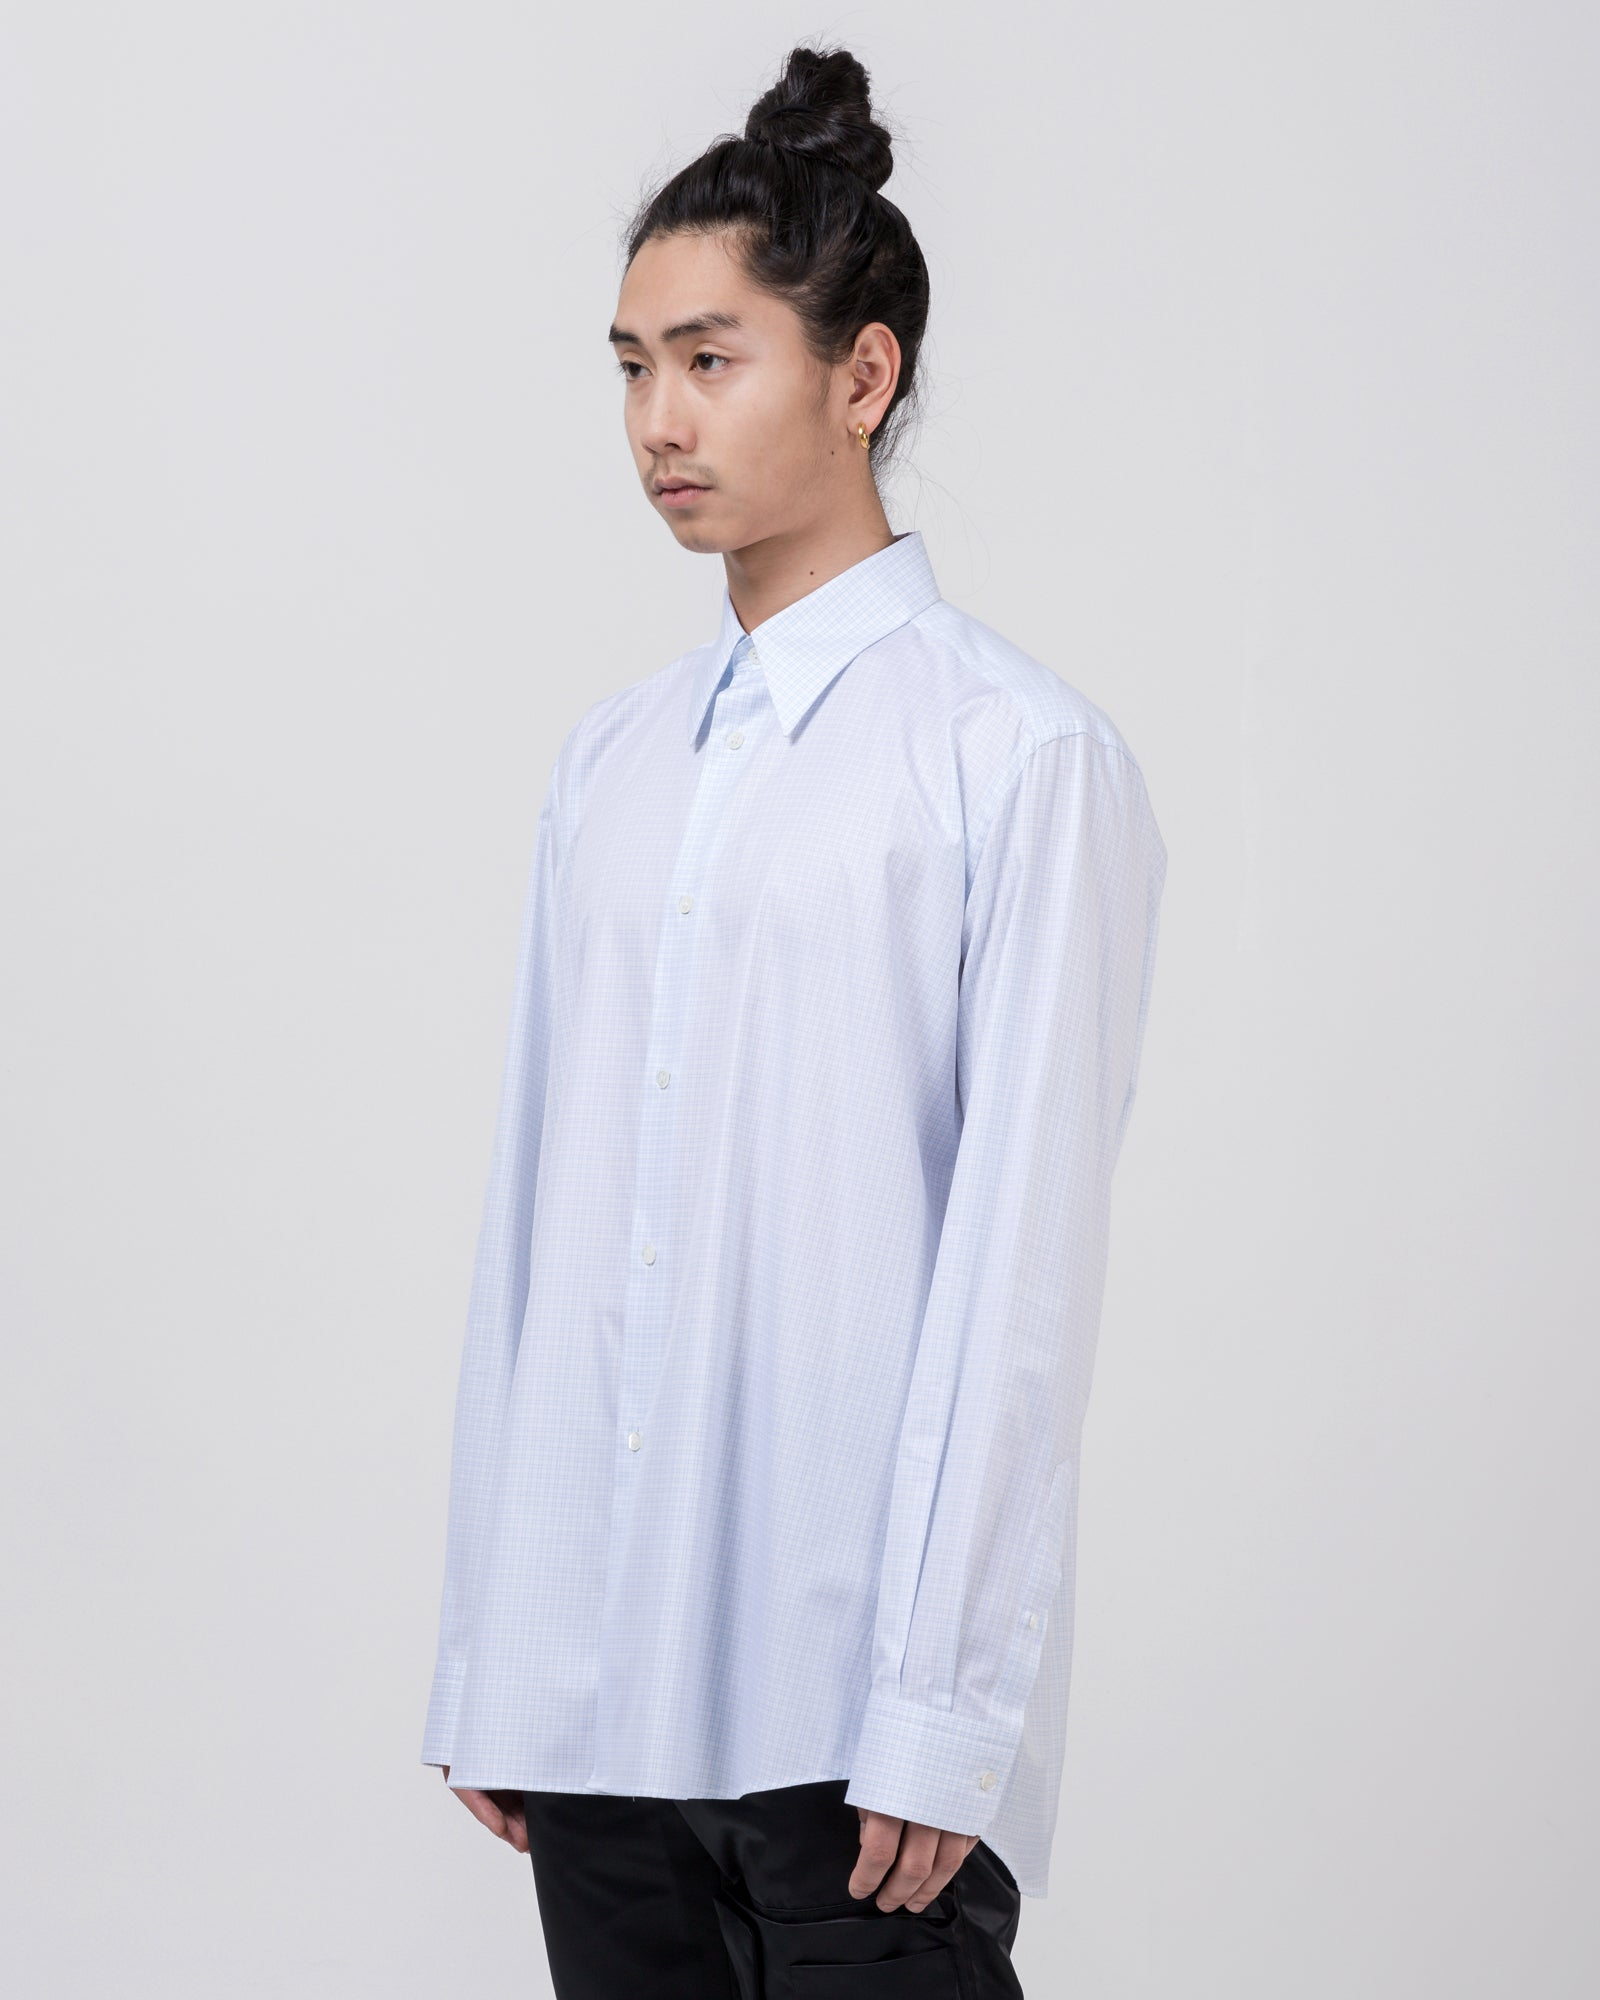 Shirt with Plastic Pocket in White Blue